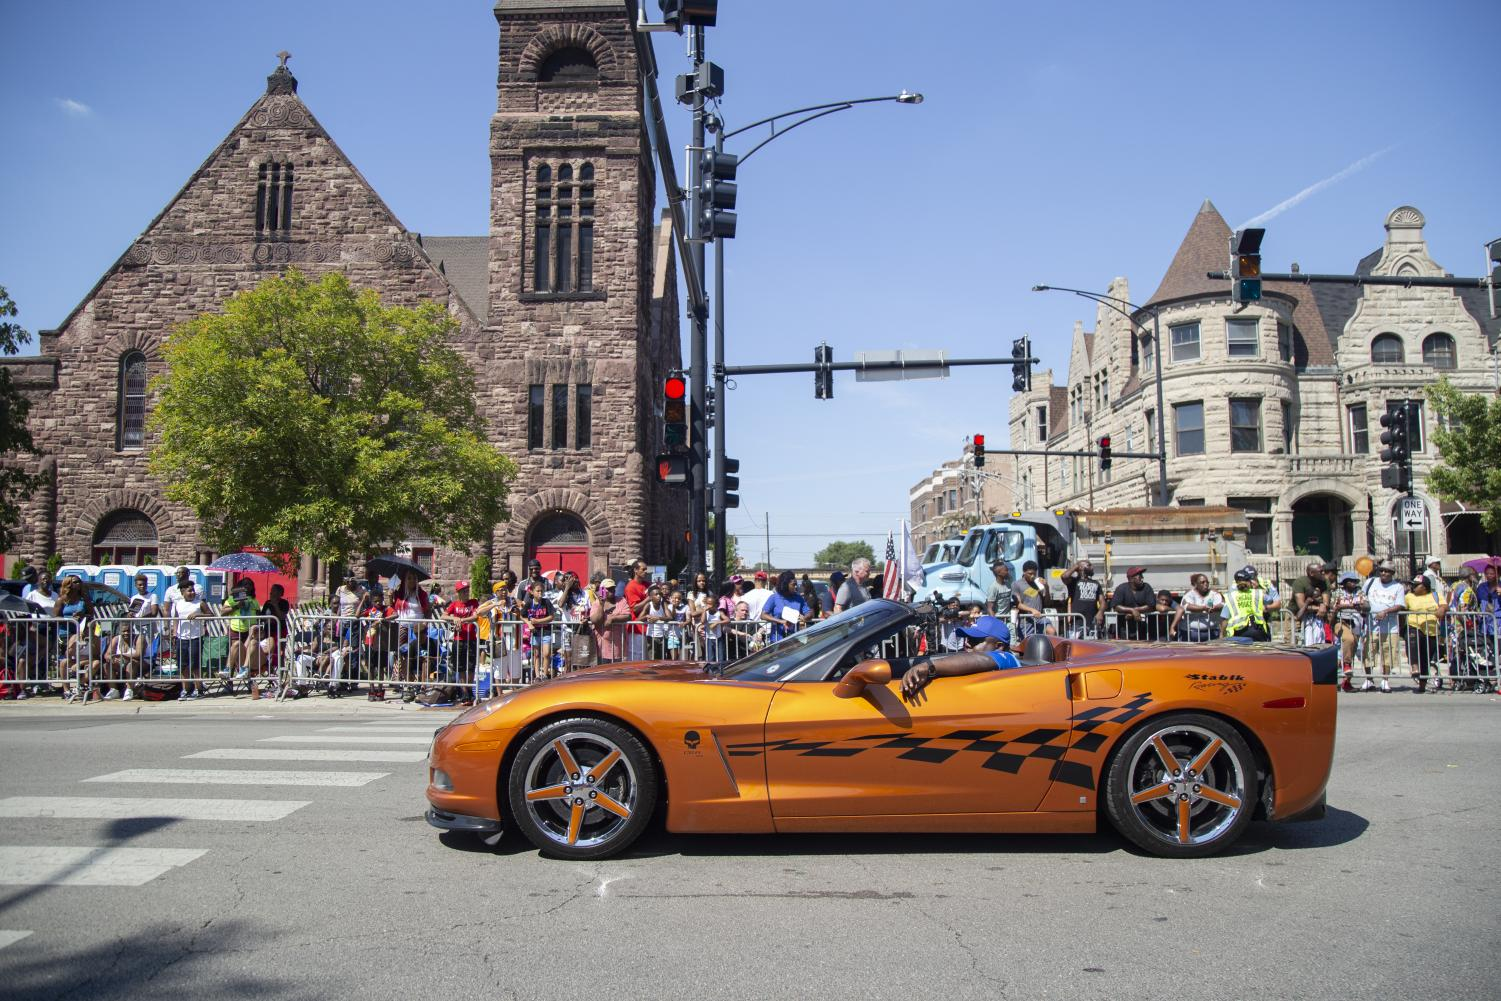 A+live+car+show+with+special+guest+passengers+was+a+part+of+the+Bud+Billiken+Parade.